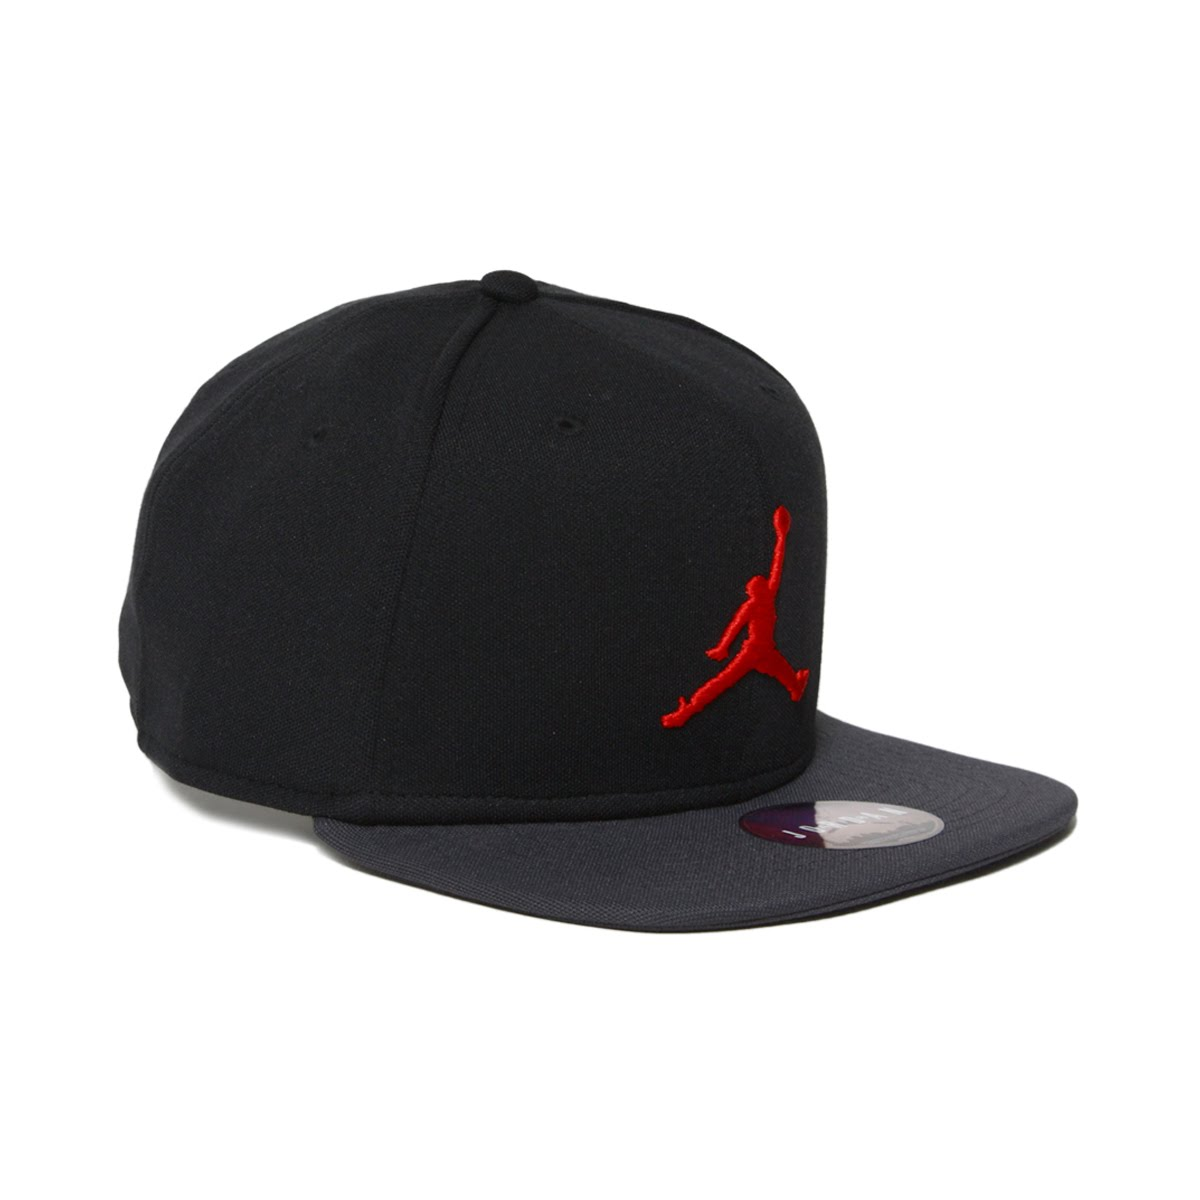 c46384b5dc0 A legend of Jordan. Comfort lasts all day. Western fitting. The design  which is good to the Jordan jump man snapback cap embroidering the JUMPMAN  logo that ...